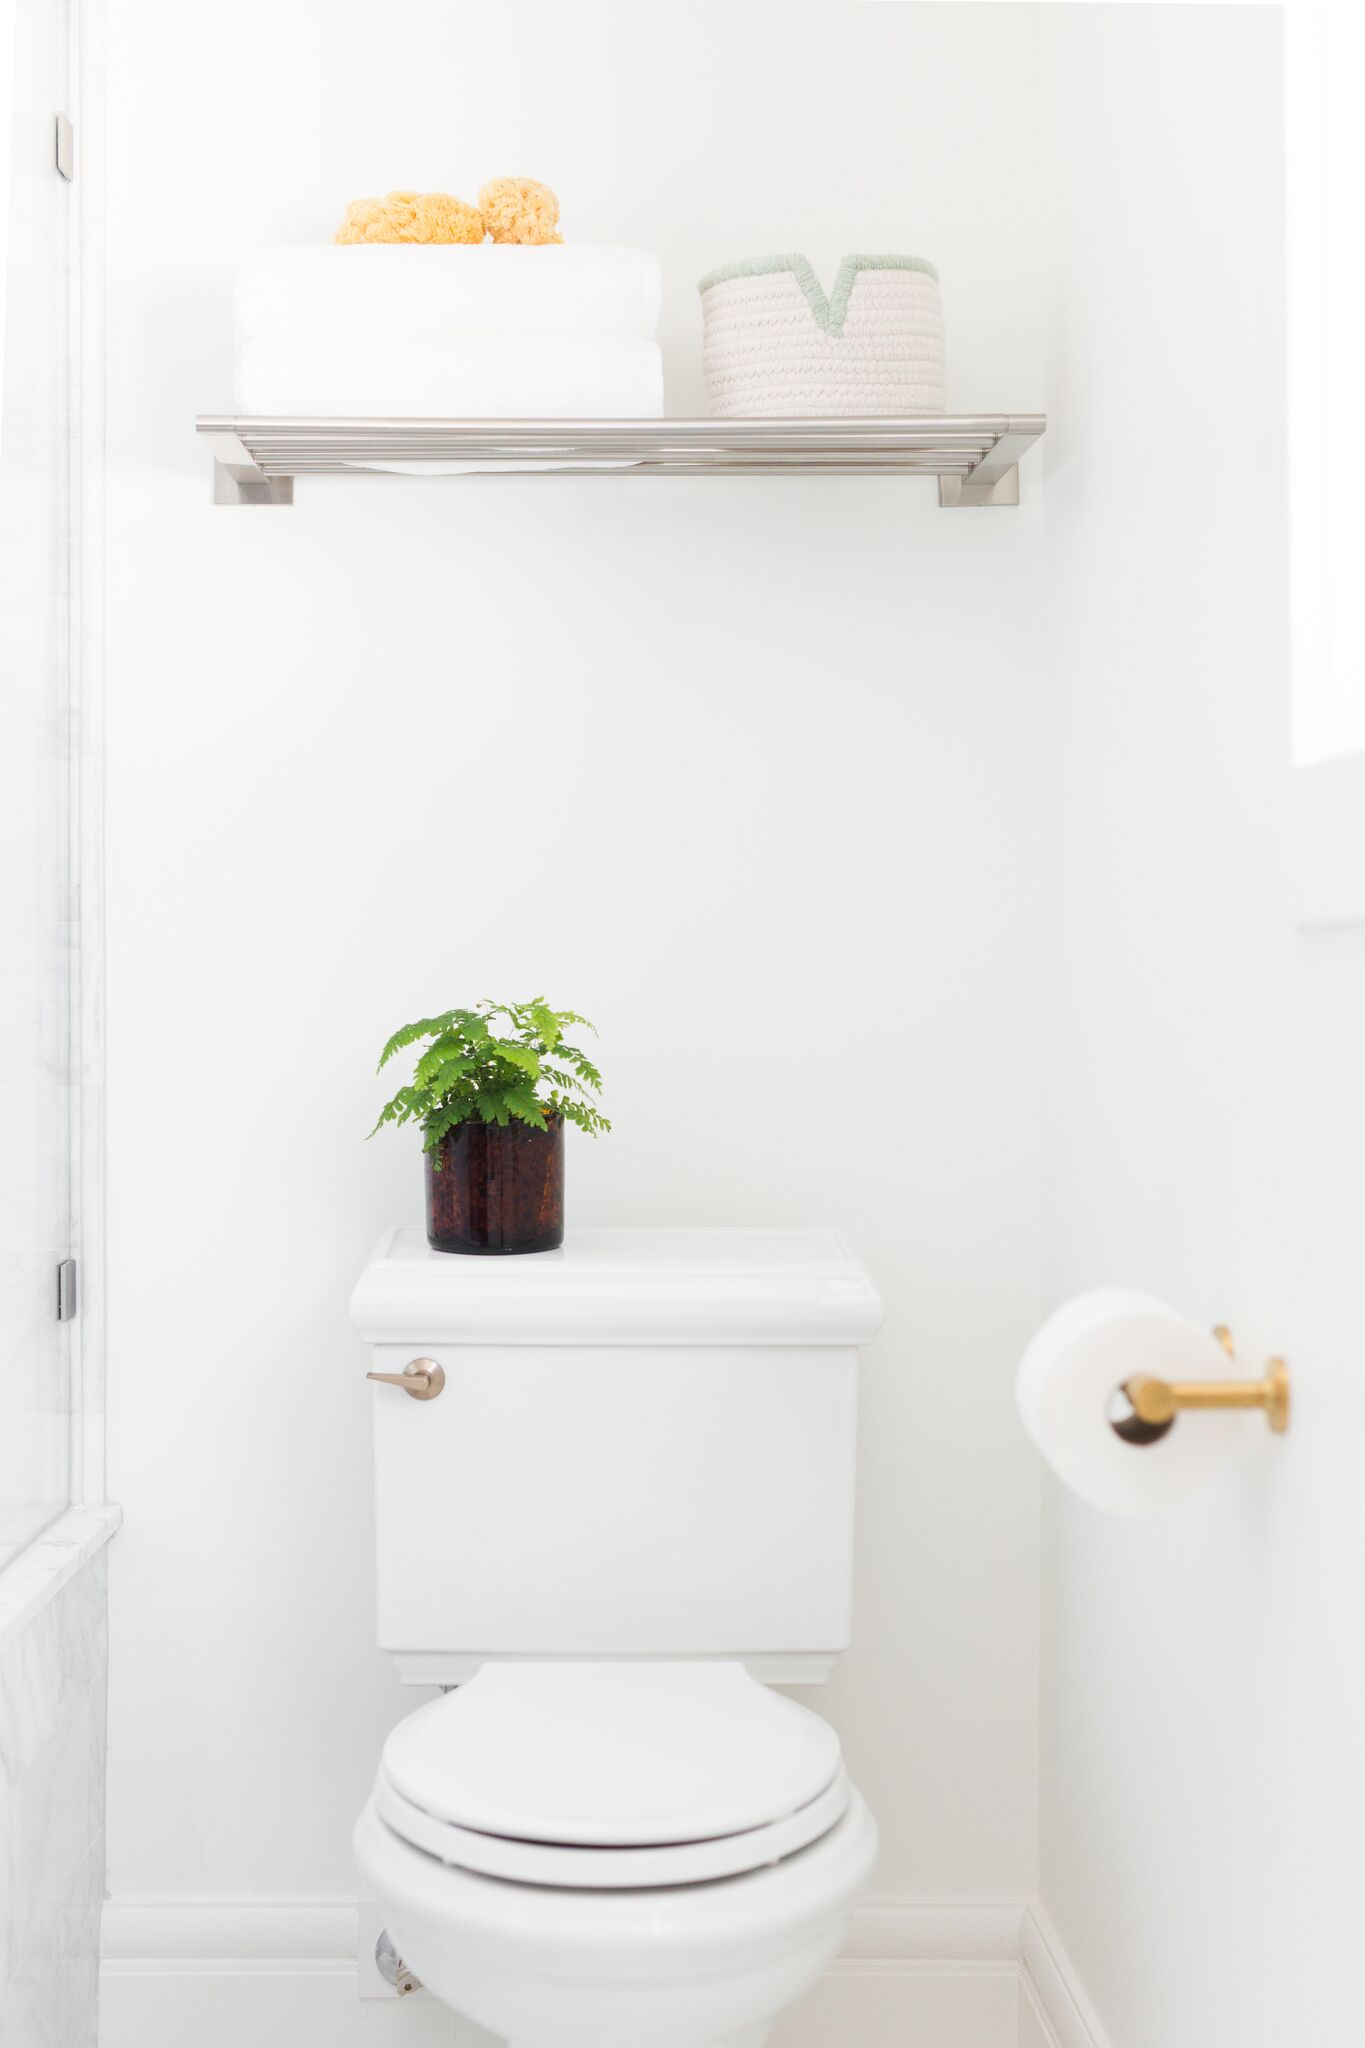 White toilet with decorative details